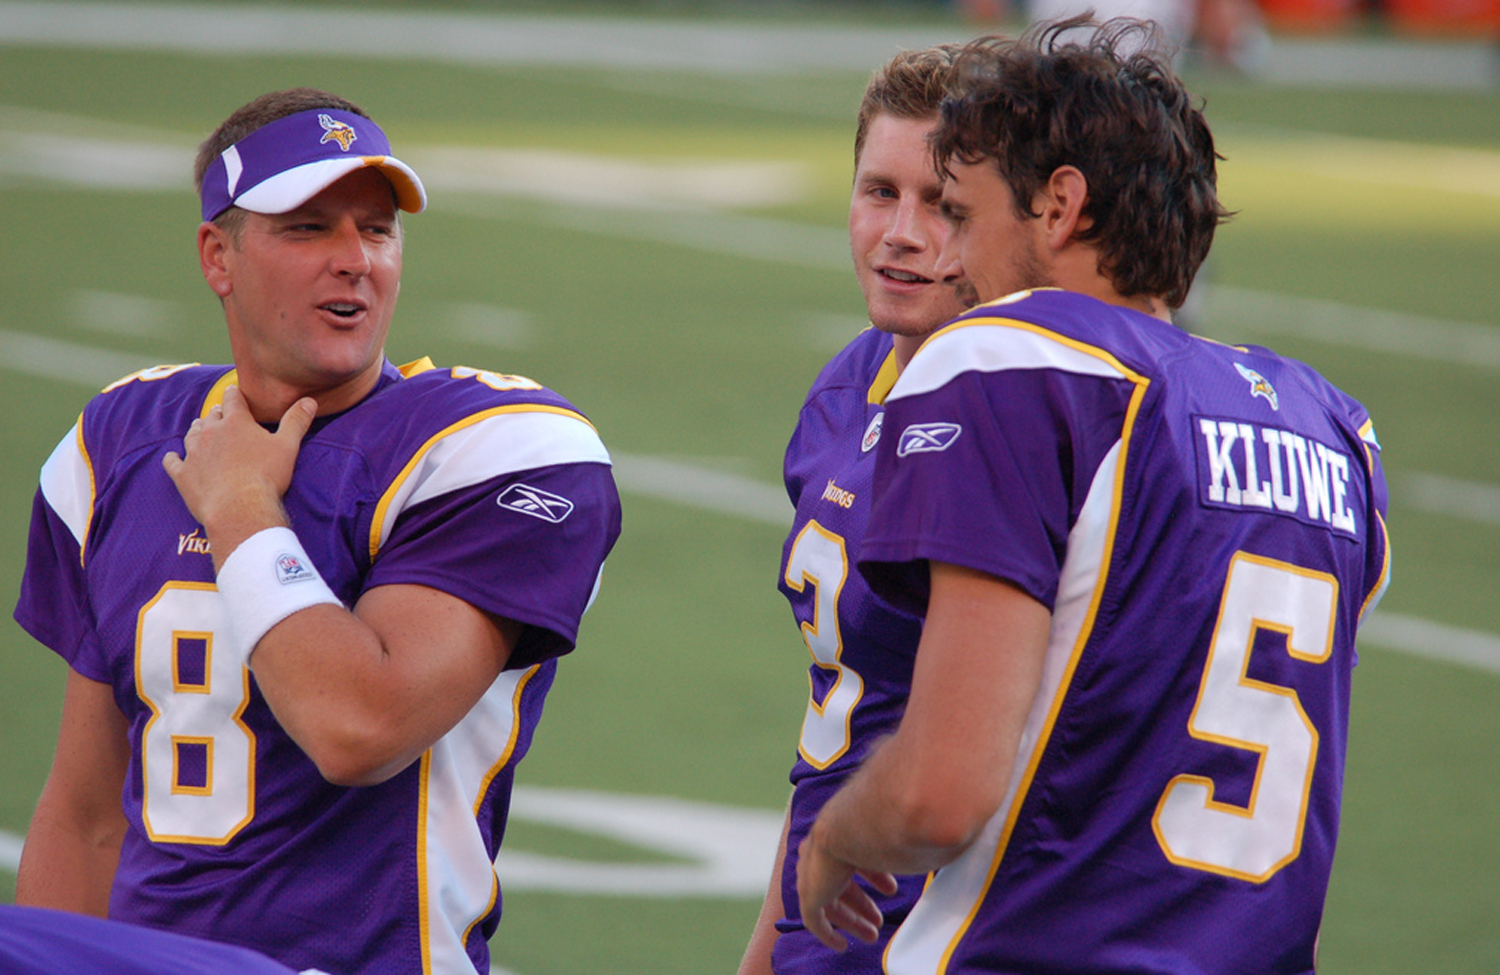 Former-Minnesota-Vikings-punter-and-outspoken-gay-rights-activist-Chris-Kluwe-chats-with-some-of-his-ex-teammates.-Licensed-through-Creative-Commons.-Courtesy-of-Flickr-user-Ioweonthego-CC-BY-SA-2.0